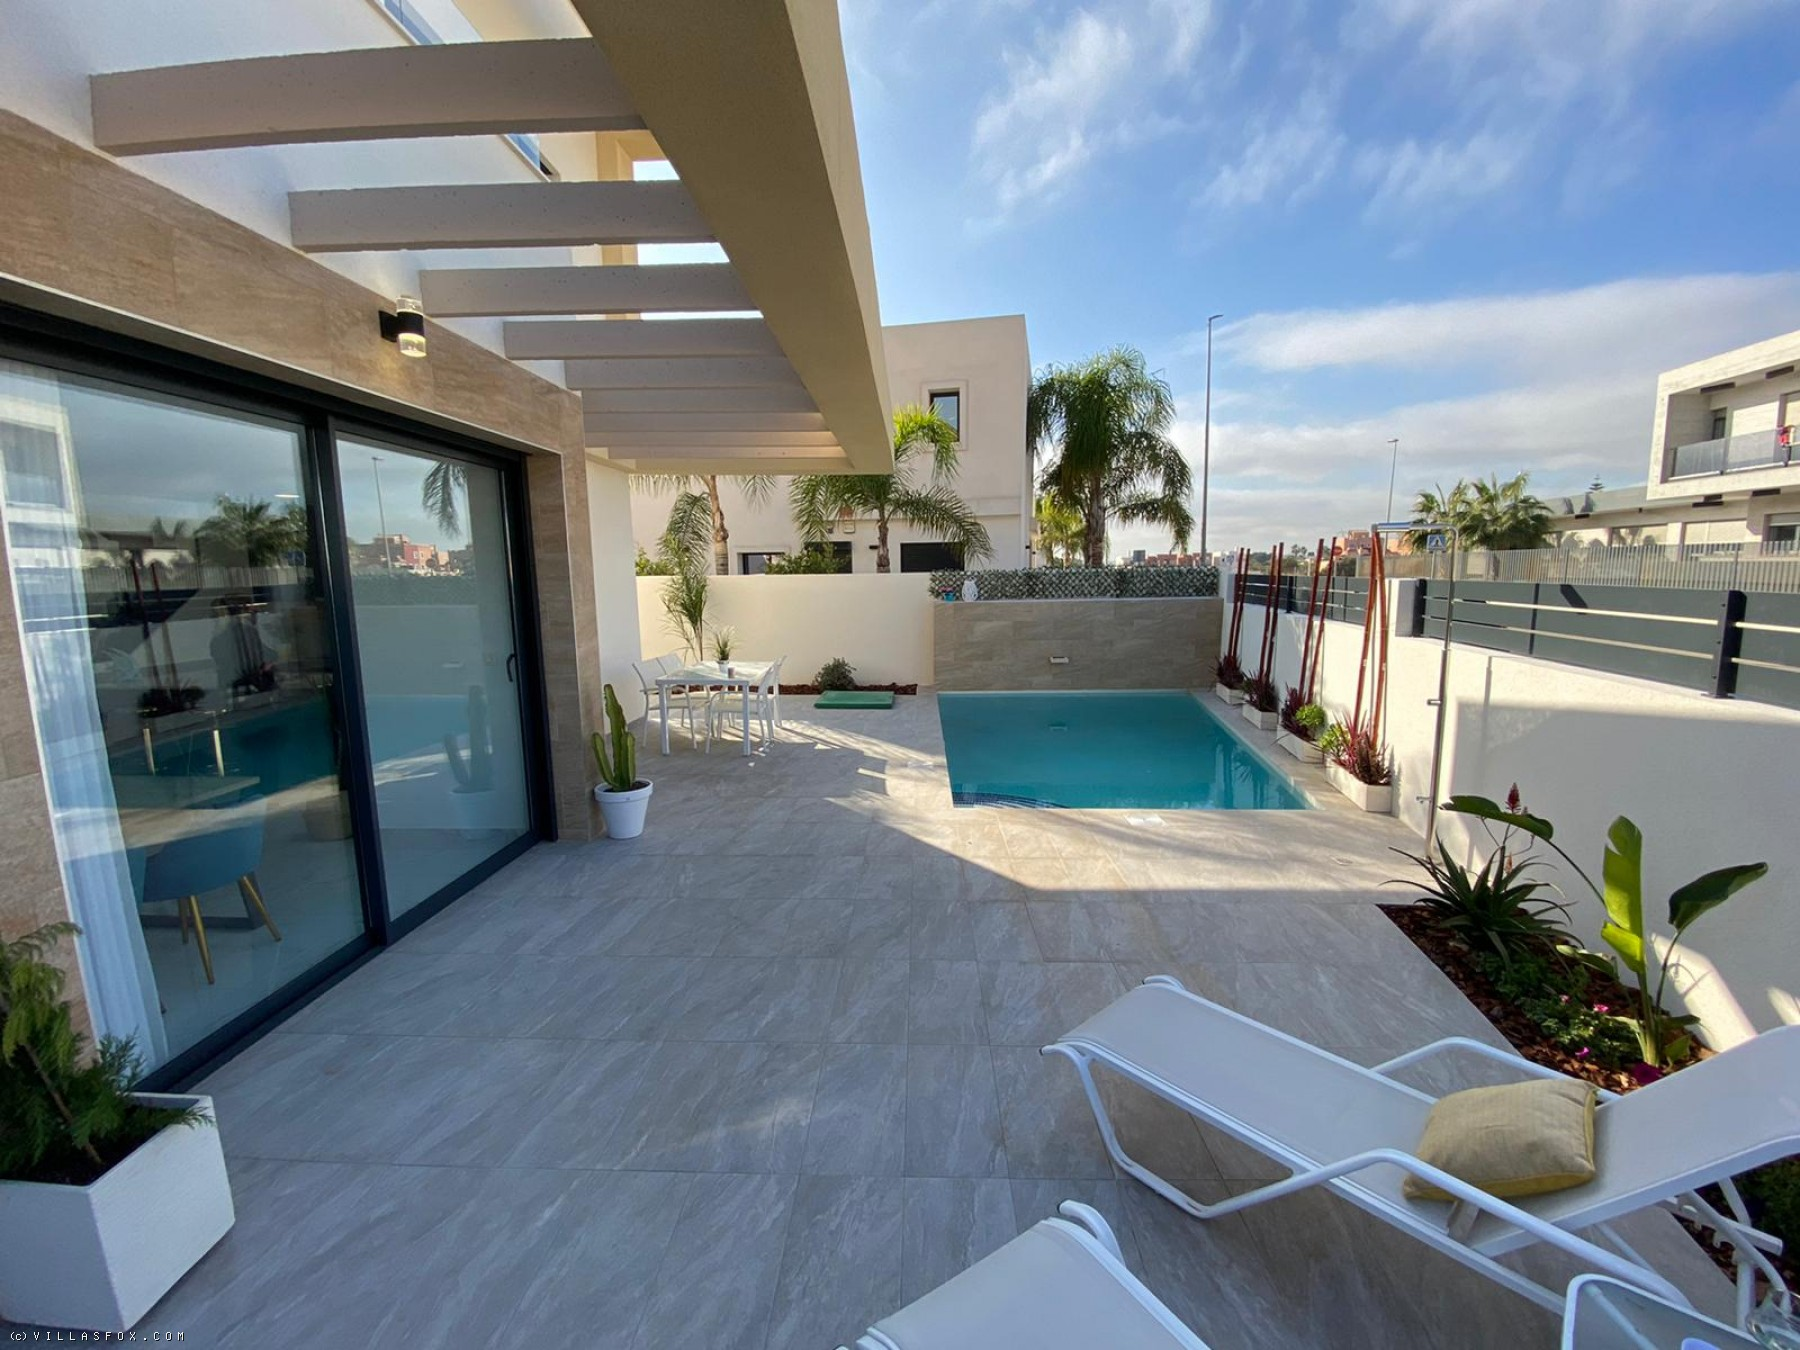 3 bedroom, 3 bath luxury new build, Los Montesinos